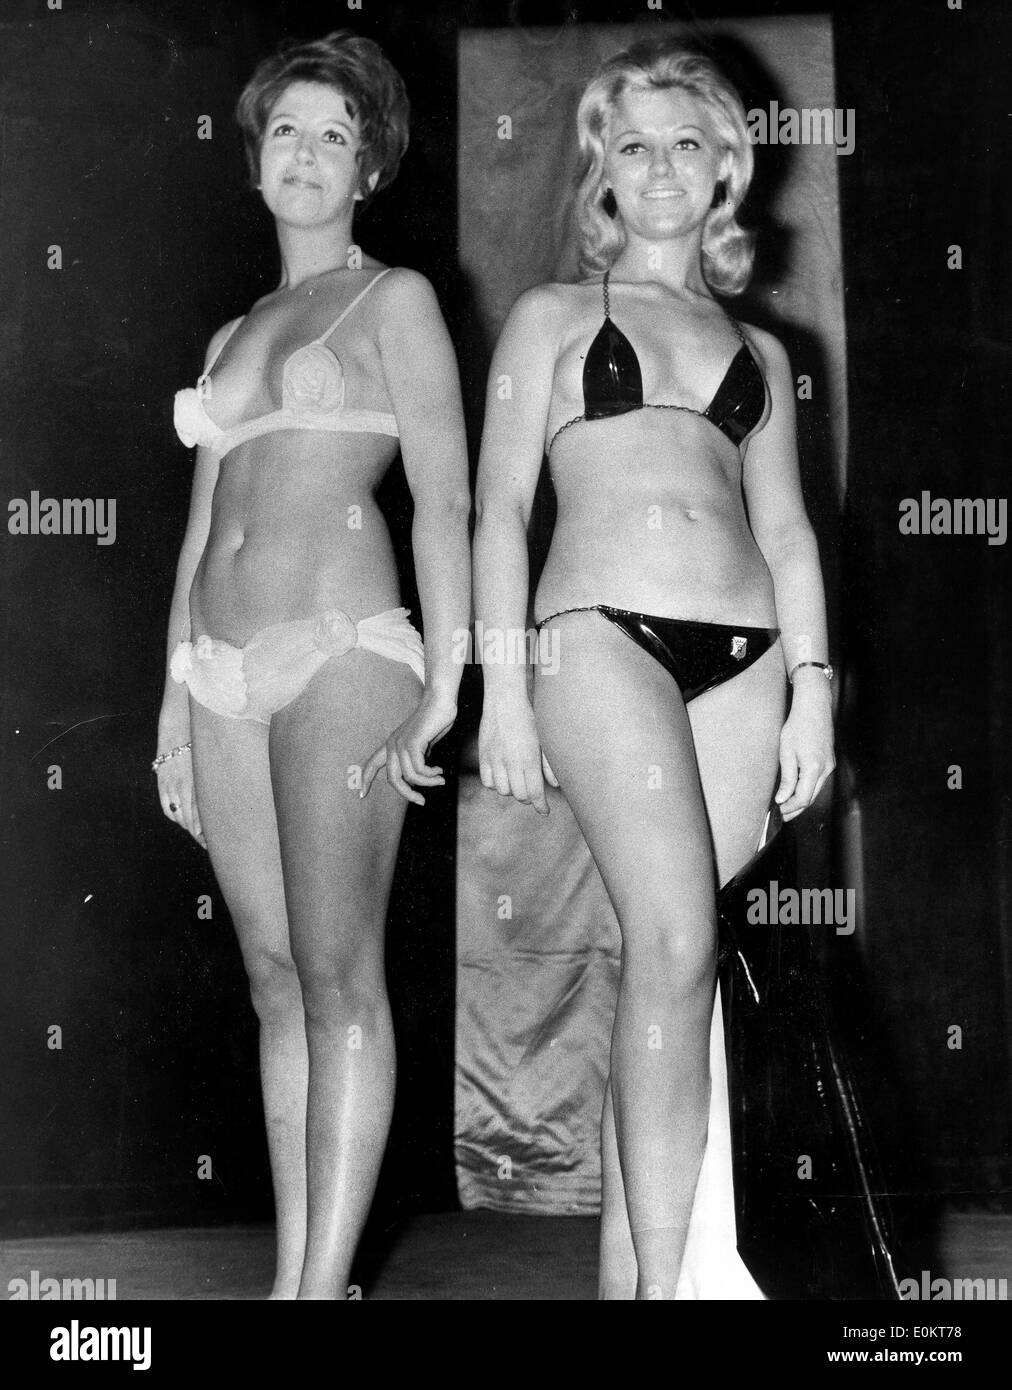 Jan. 01, 1950 - File Photo: circa 1940s-1950s, location unknown. Girls posing in bikini's in fashion shows, shoots and on beaches tanning. According to the official version, the modern bikini was invented by French engineer Louis Rekard and fashion designer Jacques Heim in Paris in 1946 and introduced on July 5 at a fashion show at Piscine Molitor in Paris. It was a string bikini with a g-string back - Stock Image